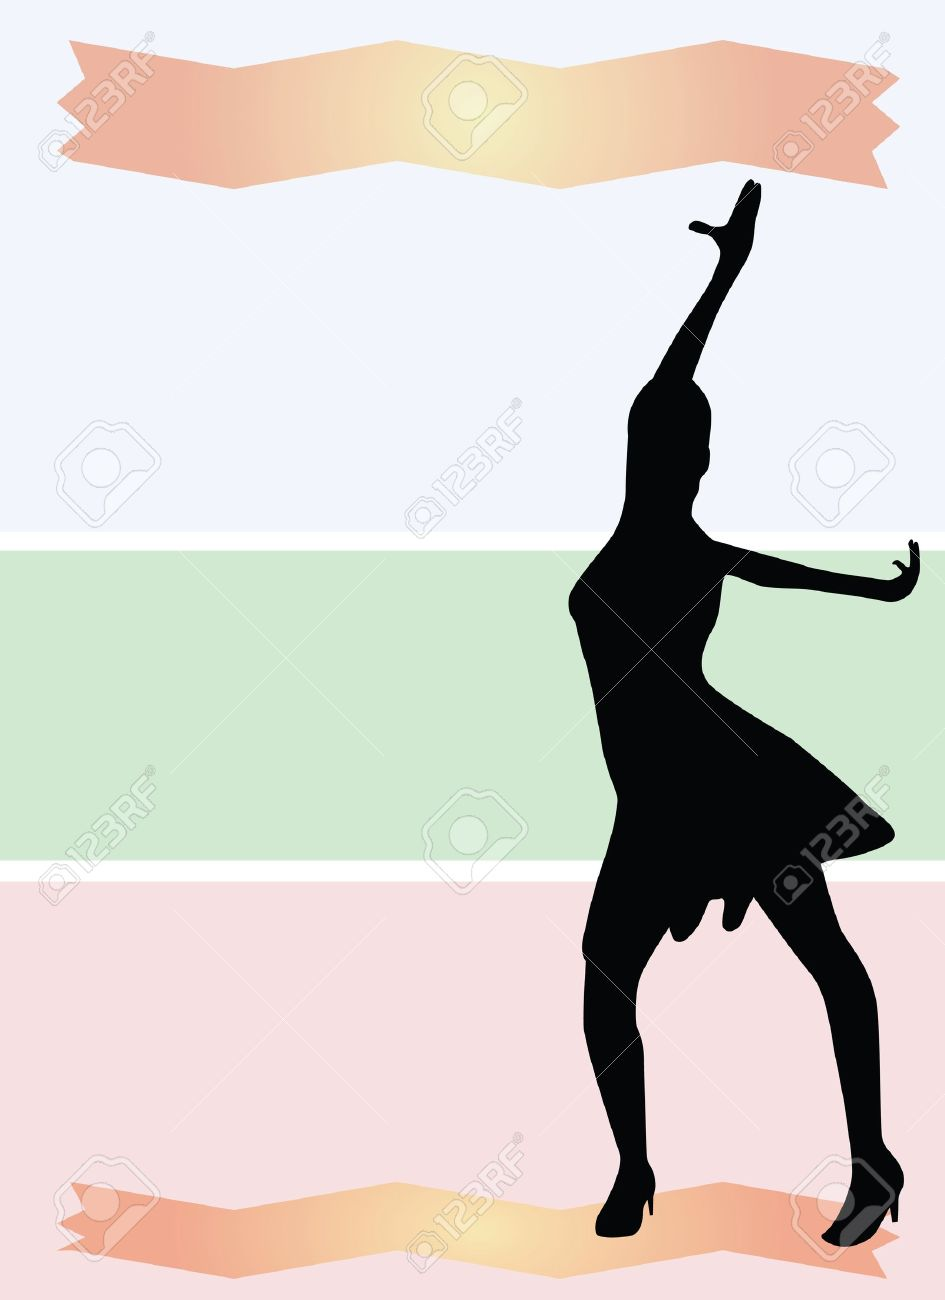 Dance background vector Stock Vector - 13185314